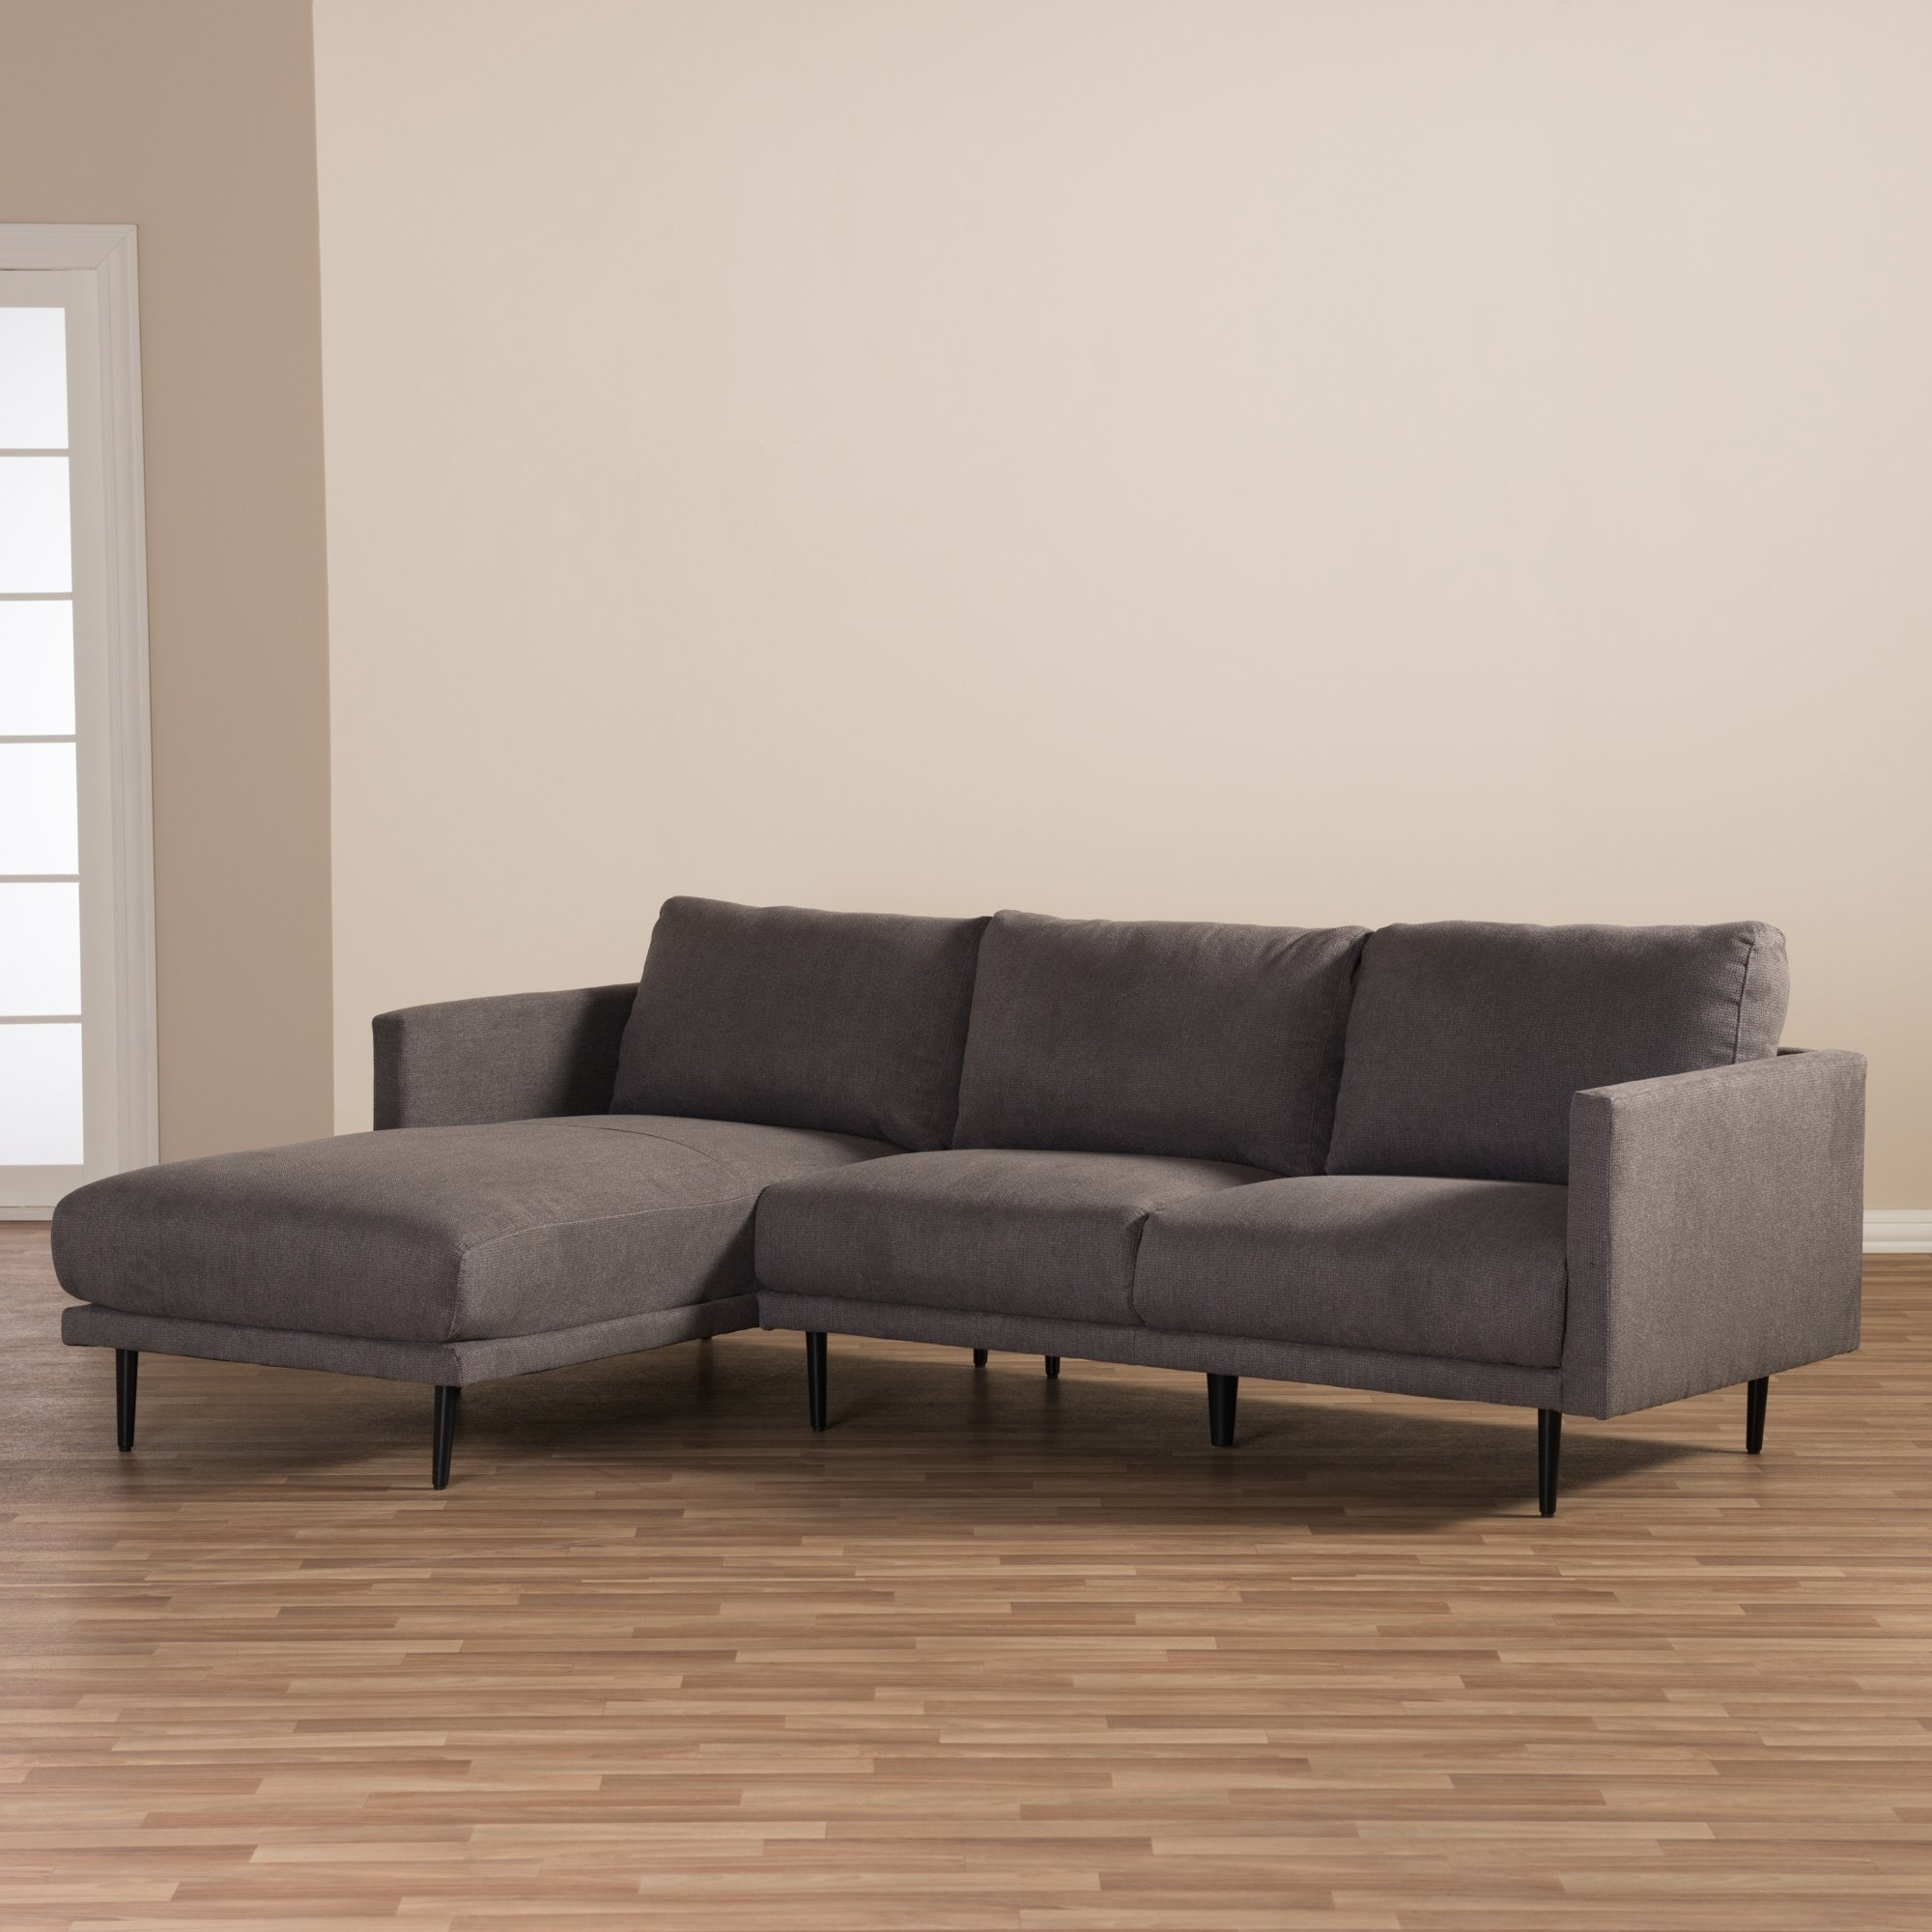 10 inspirations sectional sofas at chicago